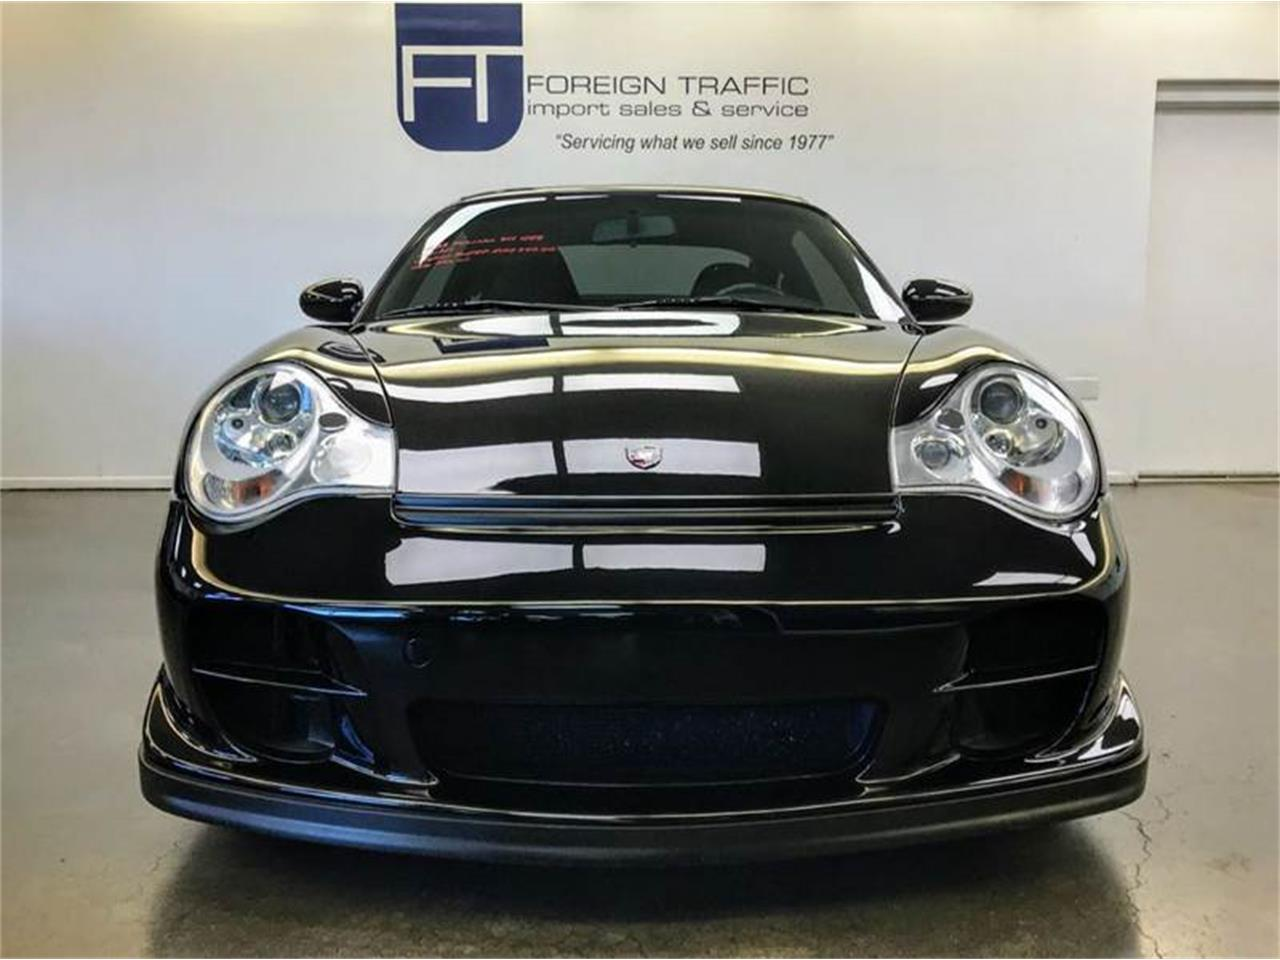 Large Picture of '02 Porsche 911 - $129,950.00 Offered by Foreign Traffic Import Sales & Service - MFQA